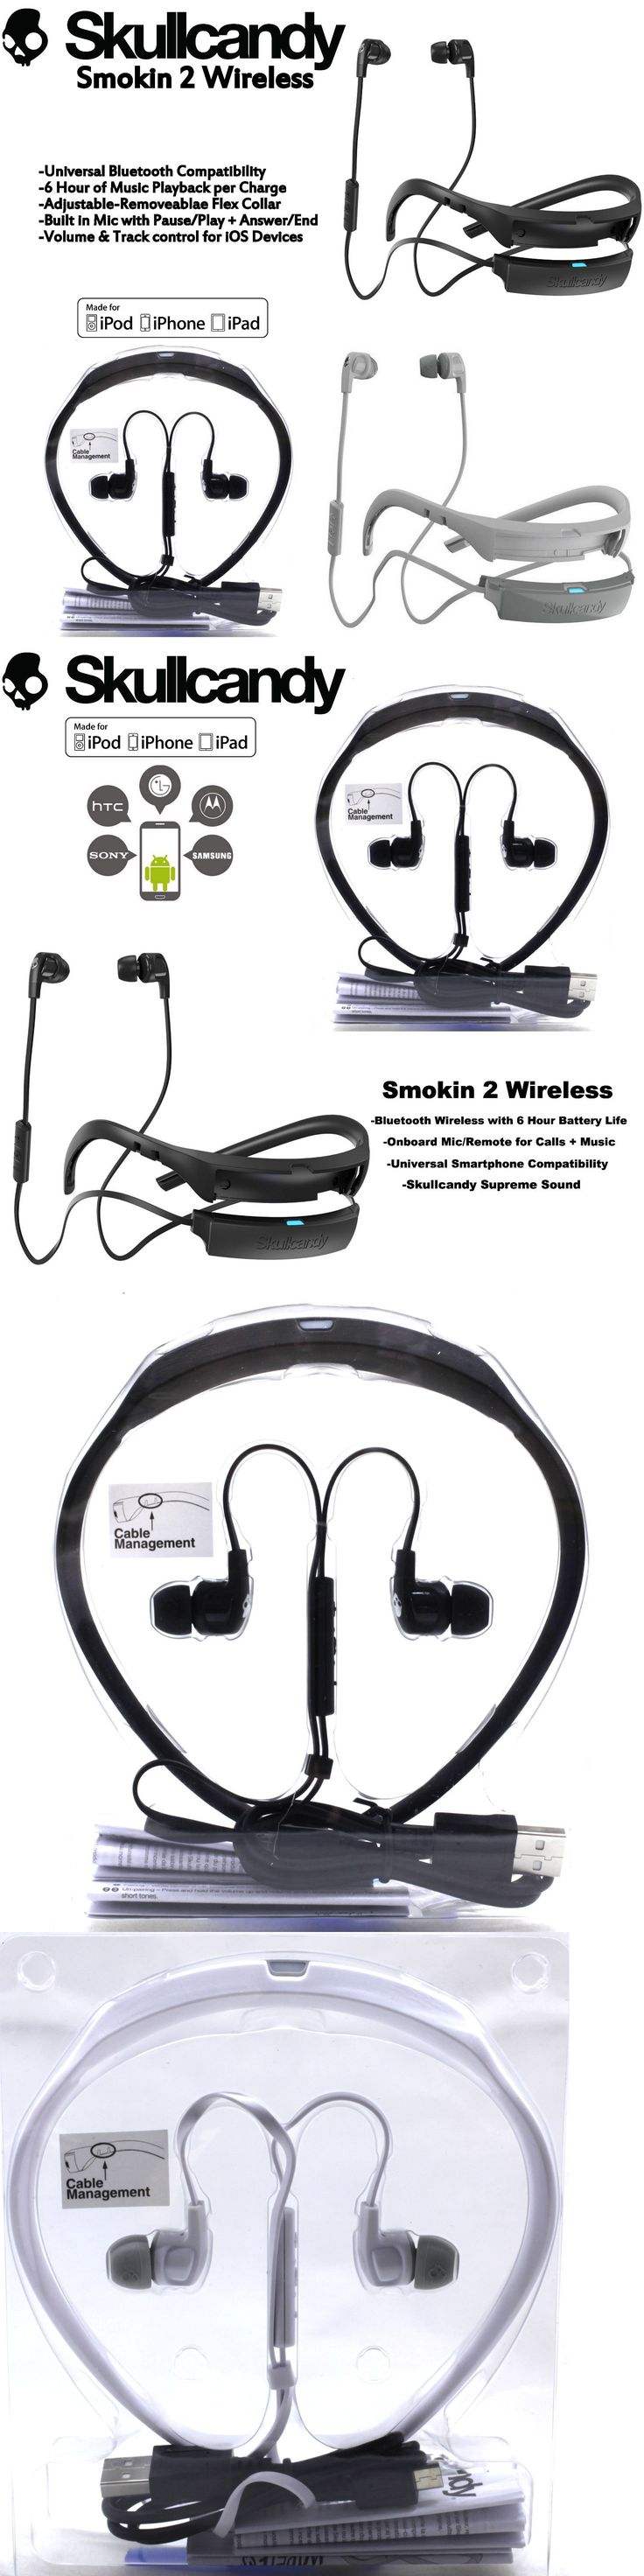 Headphones: Skullcandy Smokin Buds 2 Wireless Bluetooth Earphones With Mic Red White New -> BUY IT NOW ONLY: $34.97 on eBay!